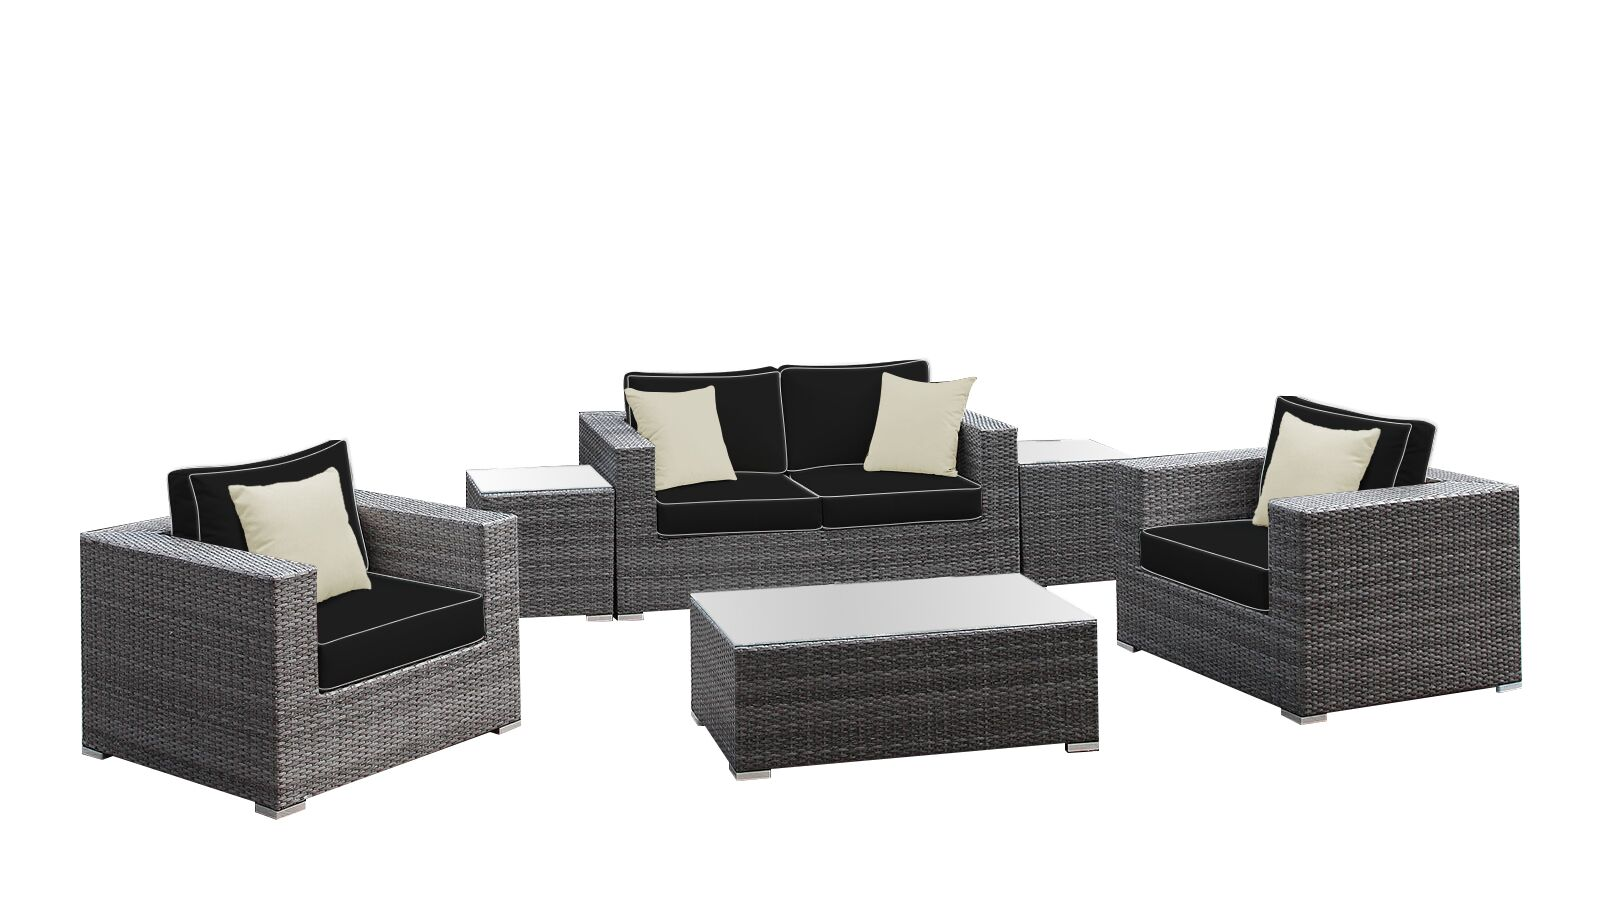 Yeager 6 Piece Rattan Sofa Set with Cushion Cushion Color: Gray/Black